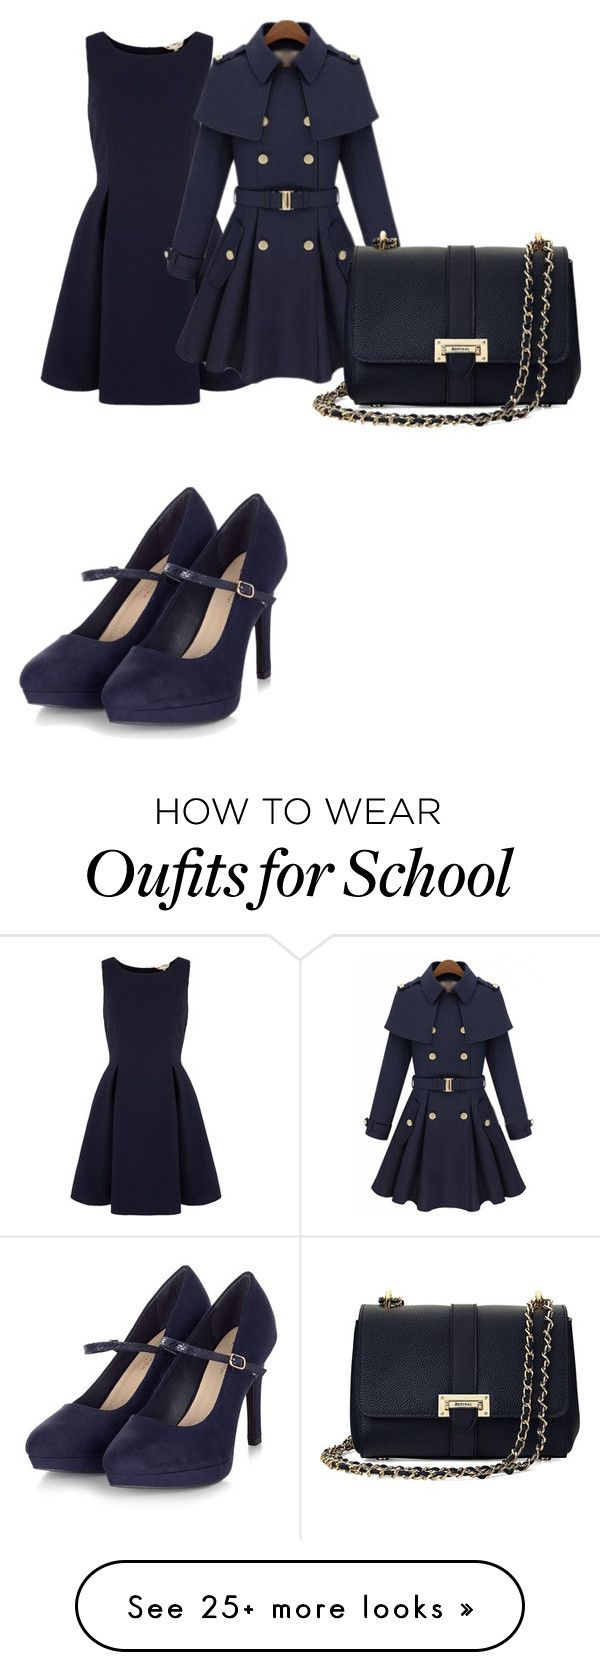 """prep school style"" by georgie-mills on Polyvore featuring Yumi and Aspinal of London"